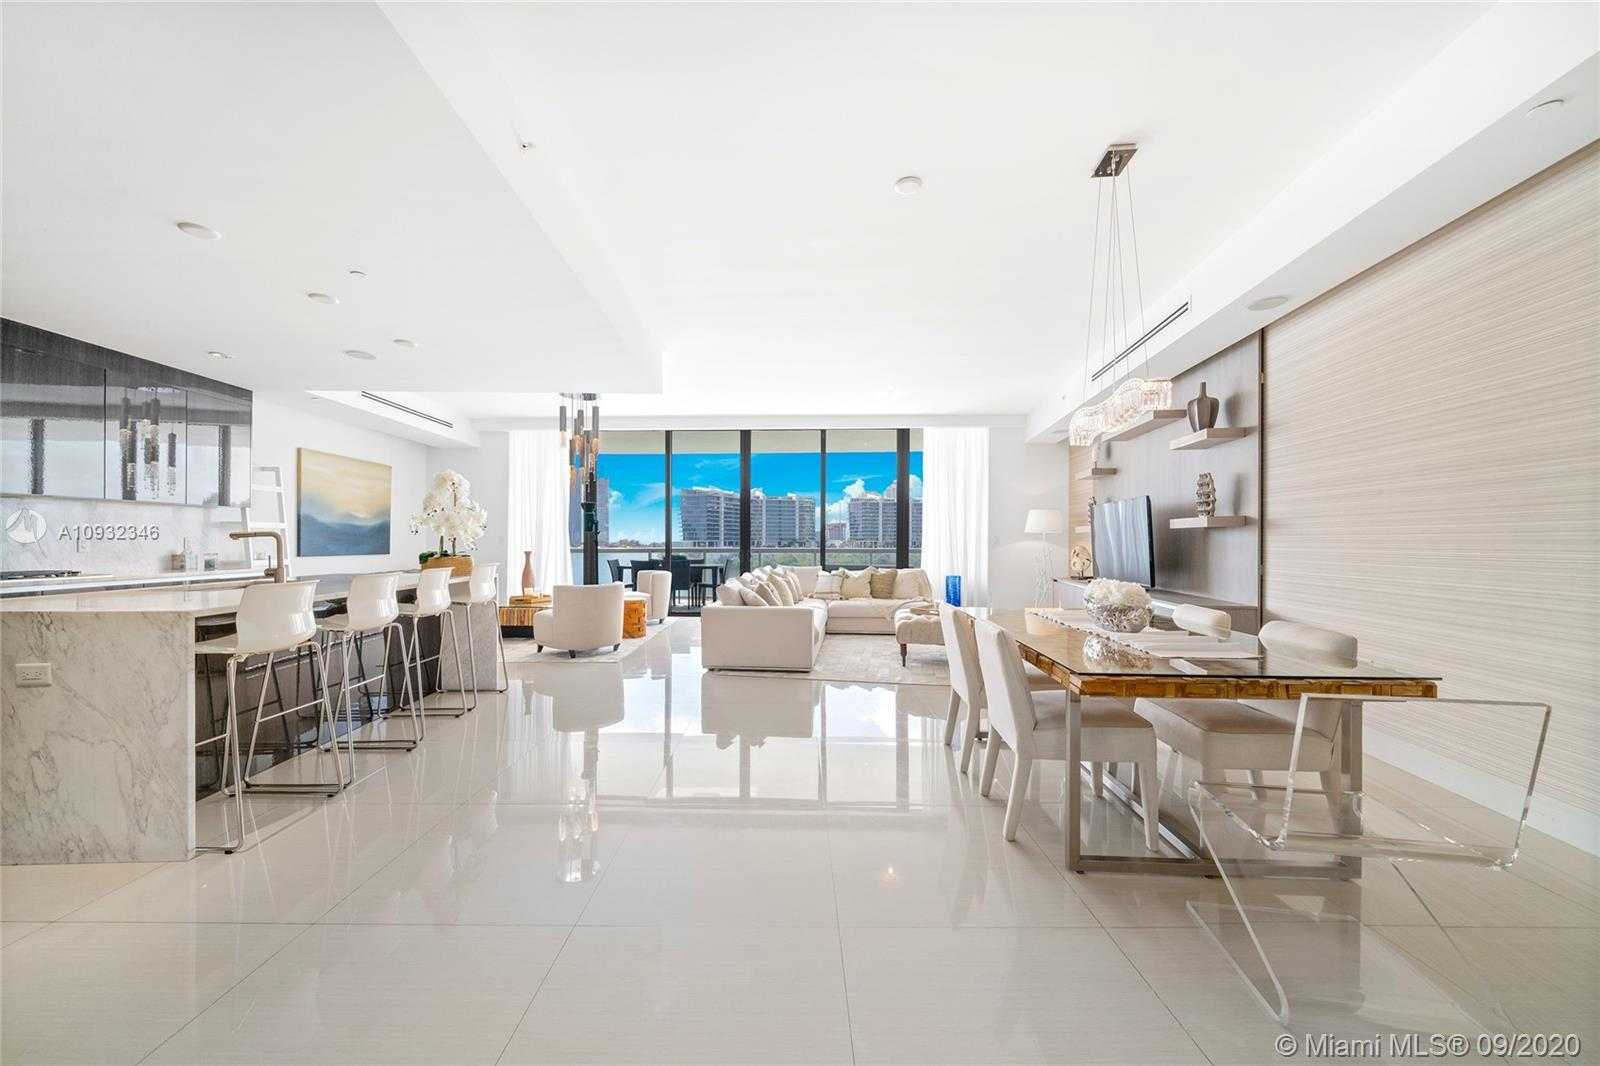 Live the good life from this gorgeous 3 bed 4.5 bath contemporary residence with intracoastal & city